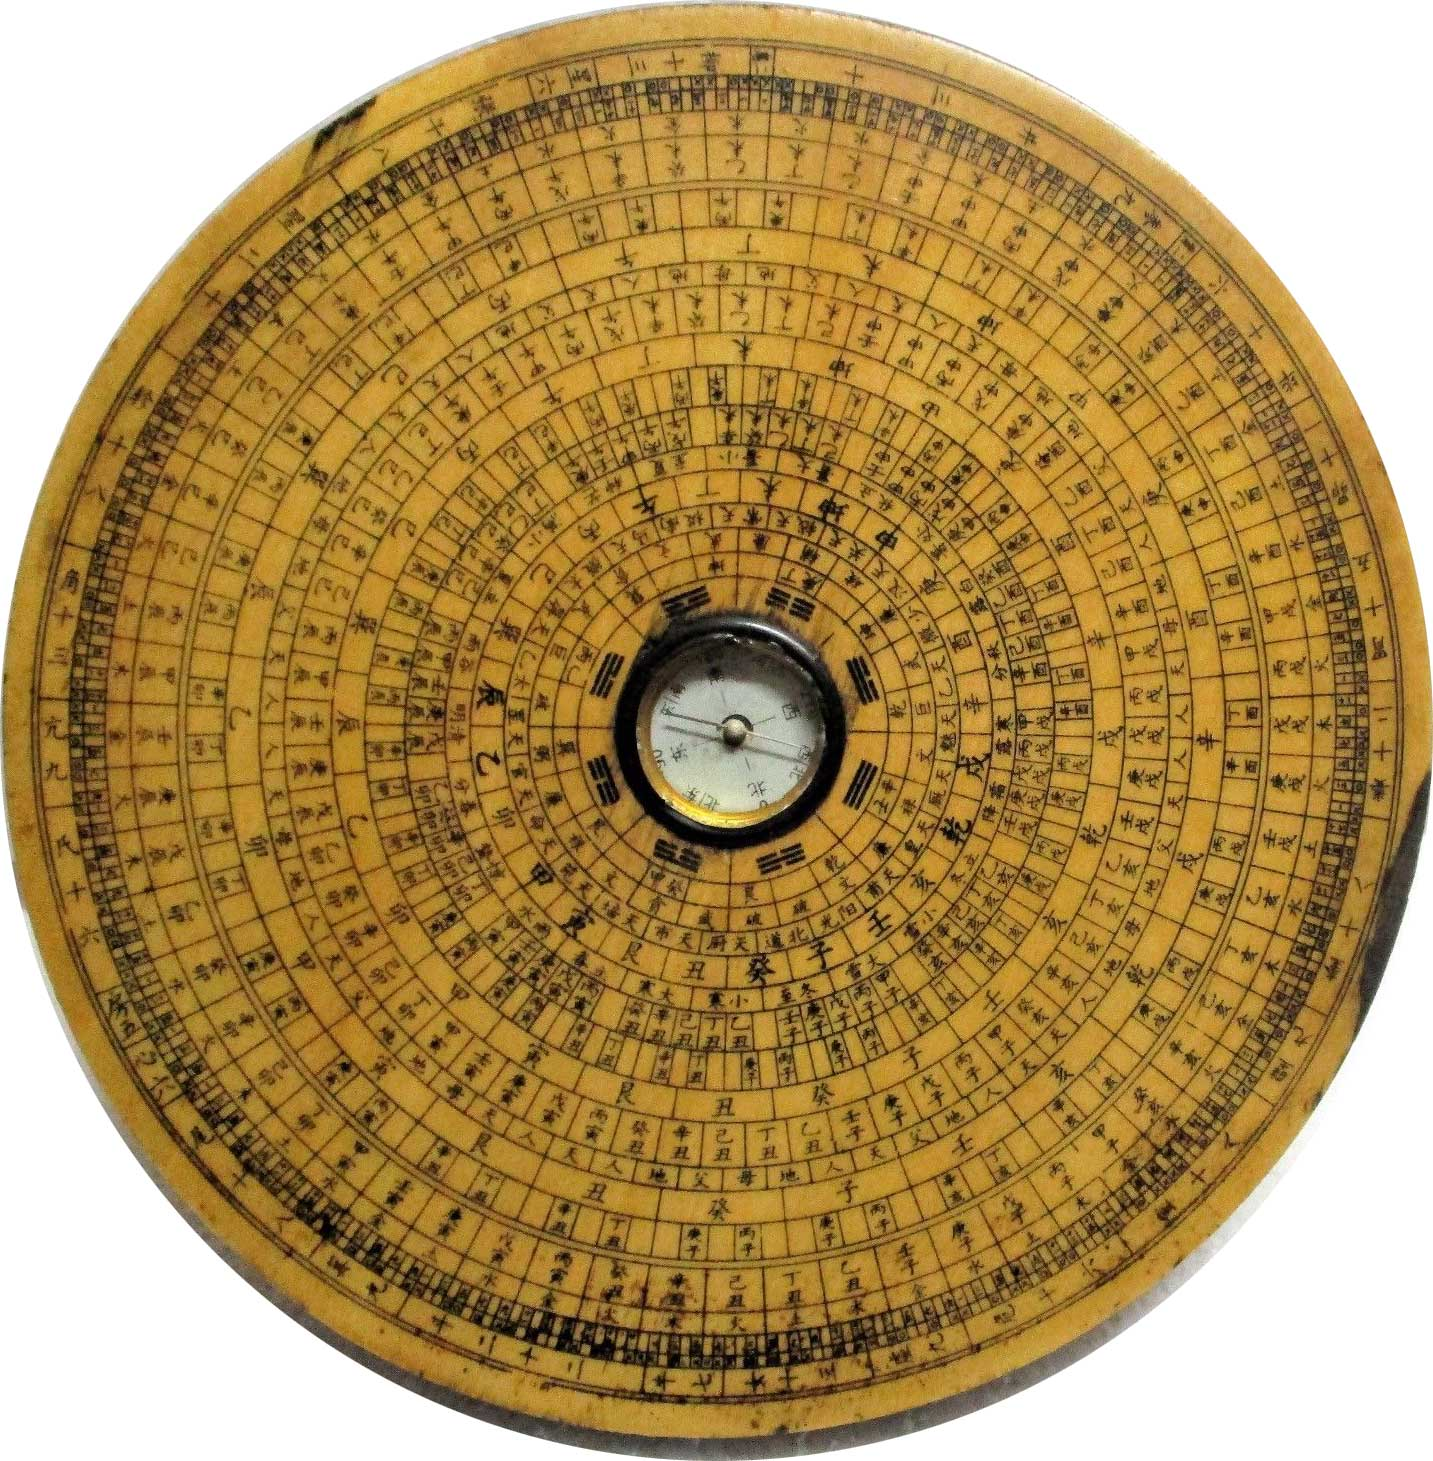 Ancient chinese compasses